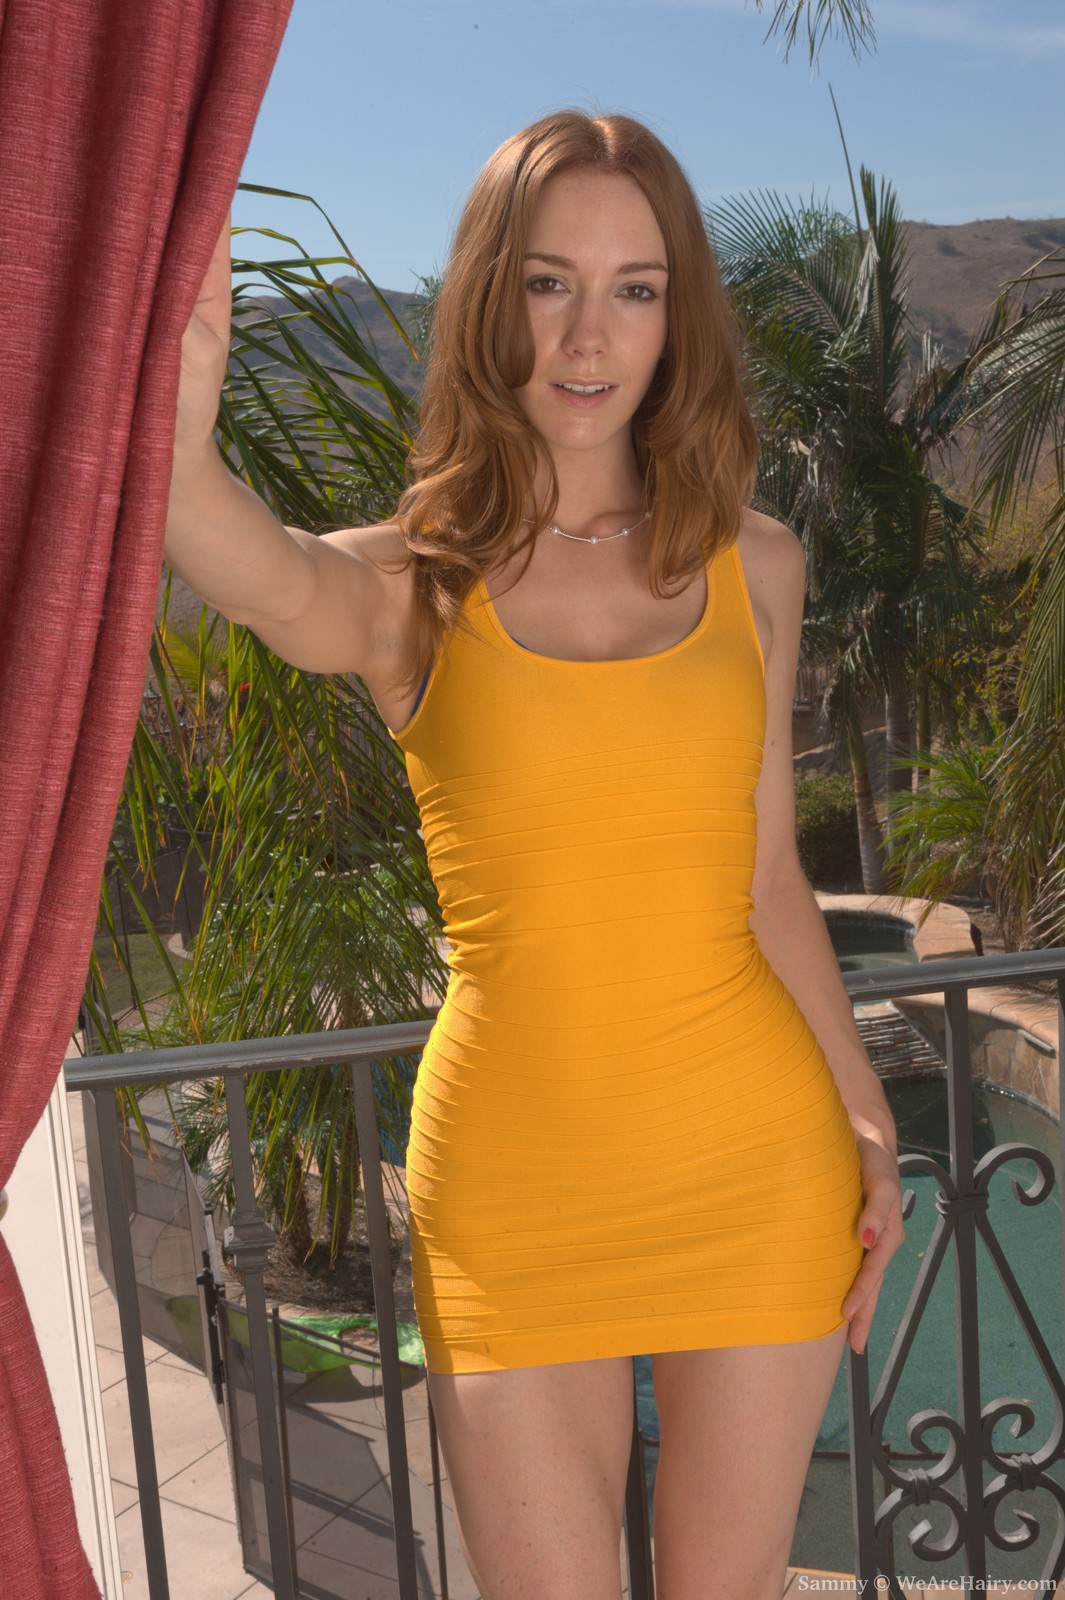 Sammy_YellowDressBlueLingerie_010